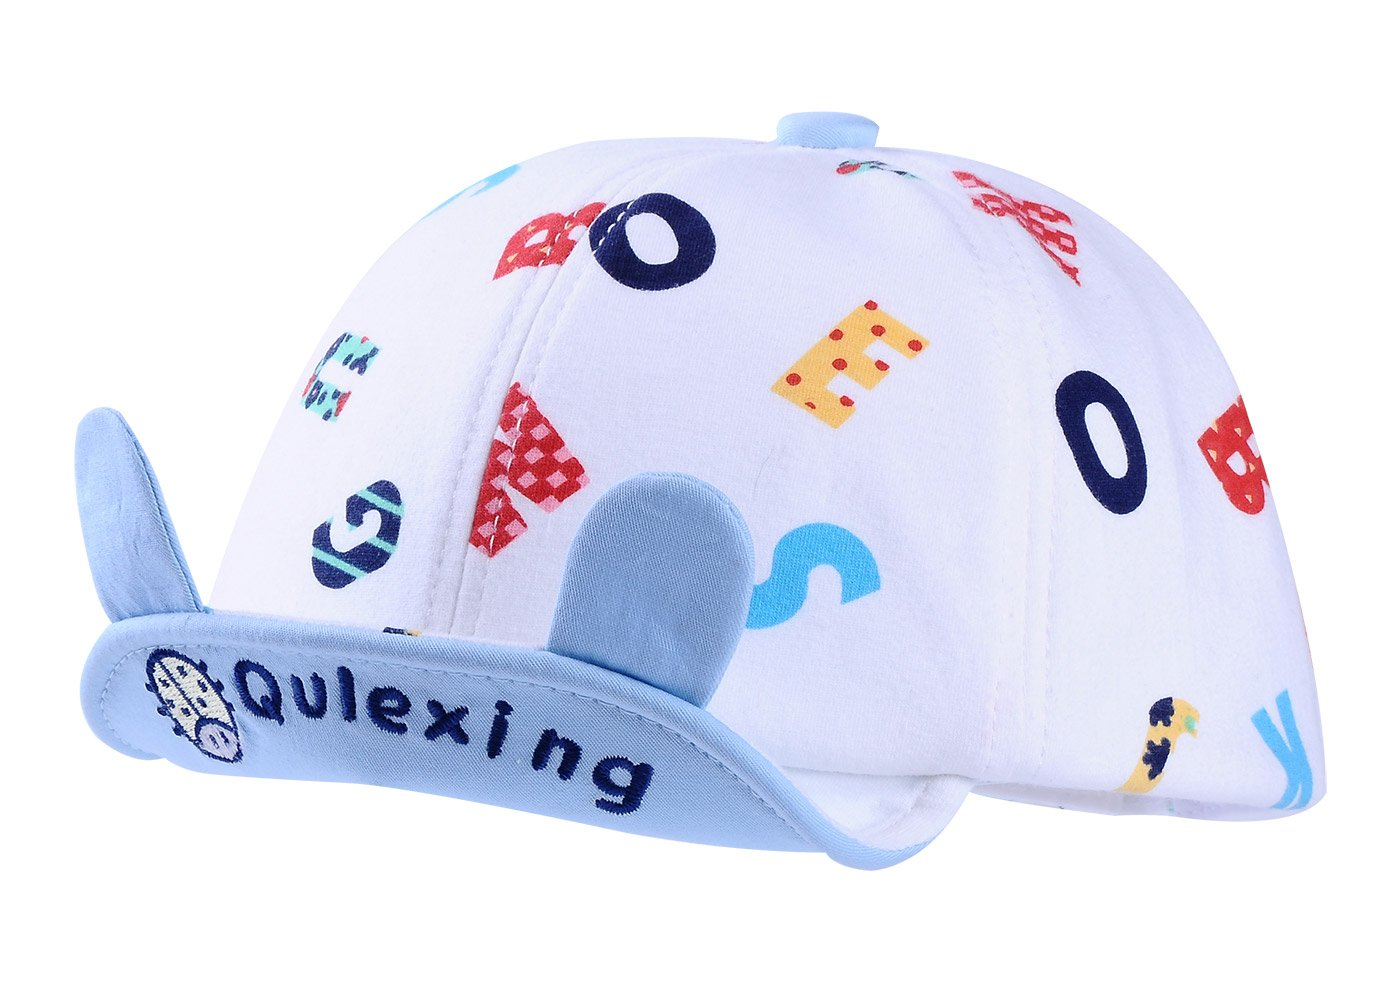 Qulexing 6-12 Months Unisex Toddler Baby Outdoor Adjustable Soft Brim Baseball Hat with Ears Letters Printed Sun Protection Cap Blue